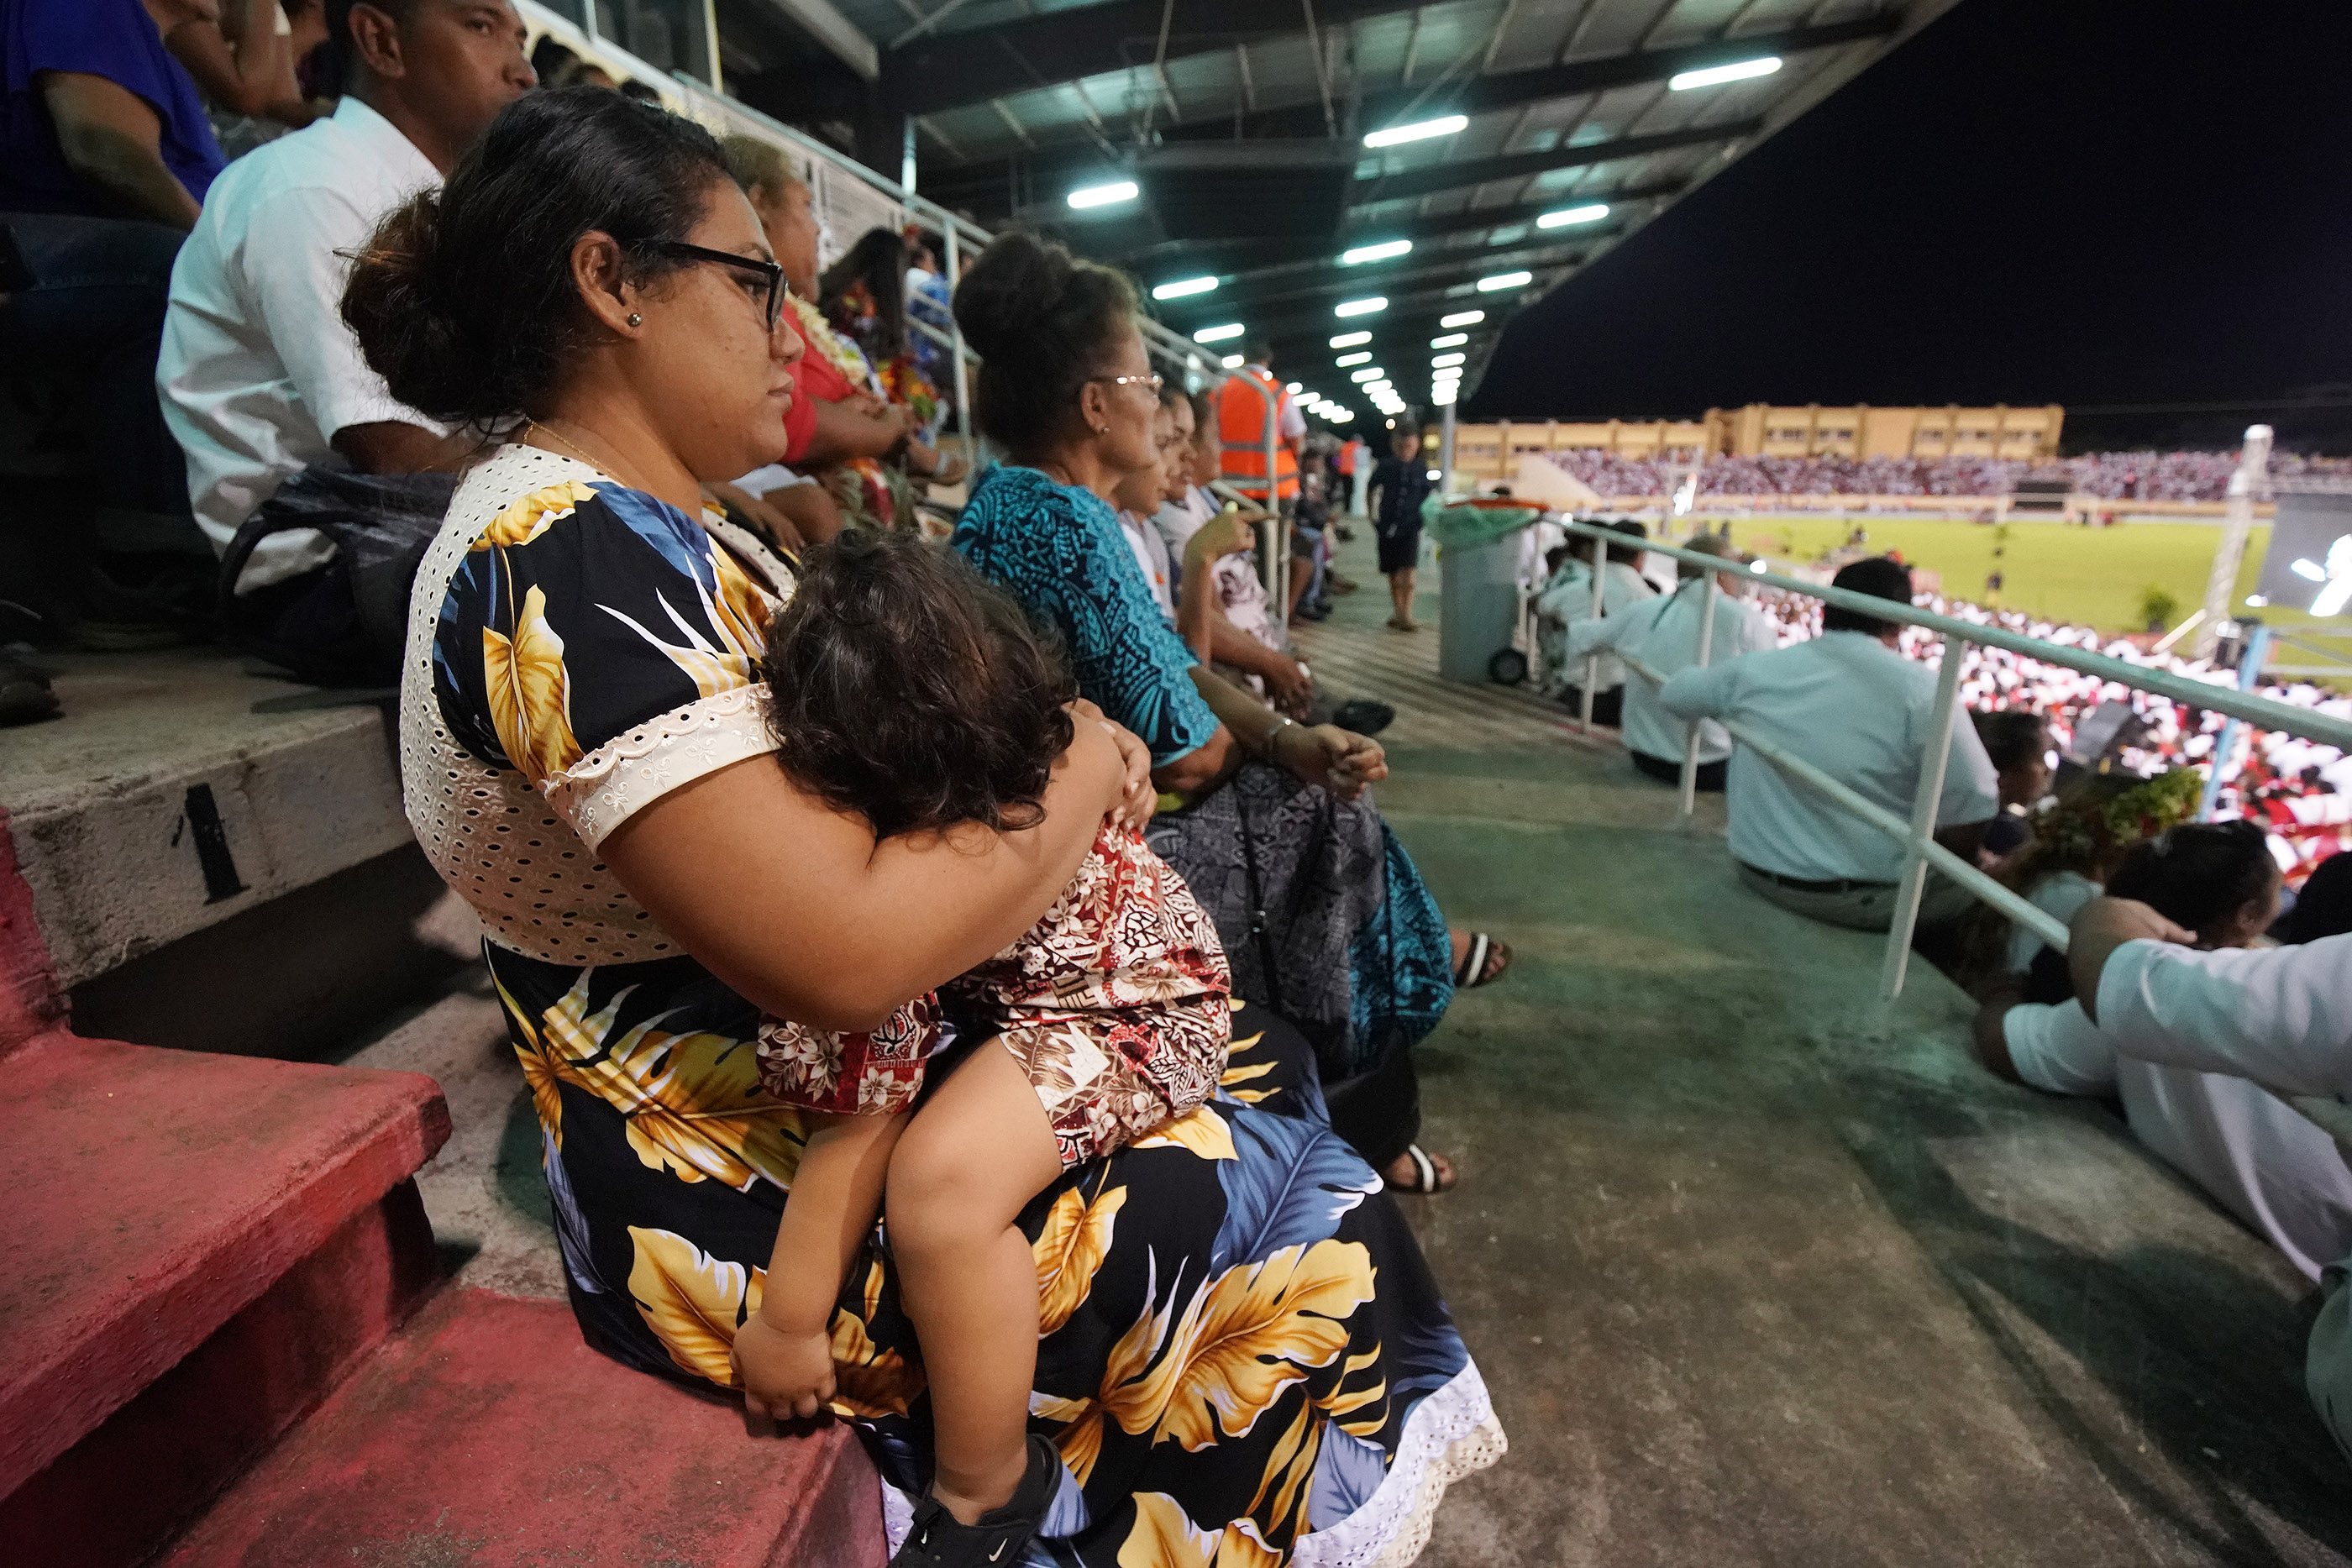 Attendees listen to speakers during a devotional at Stade Pater stadium in Papeete, Tahiti, on May 24, 2019.